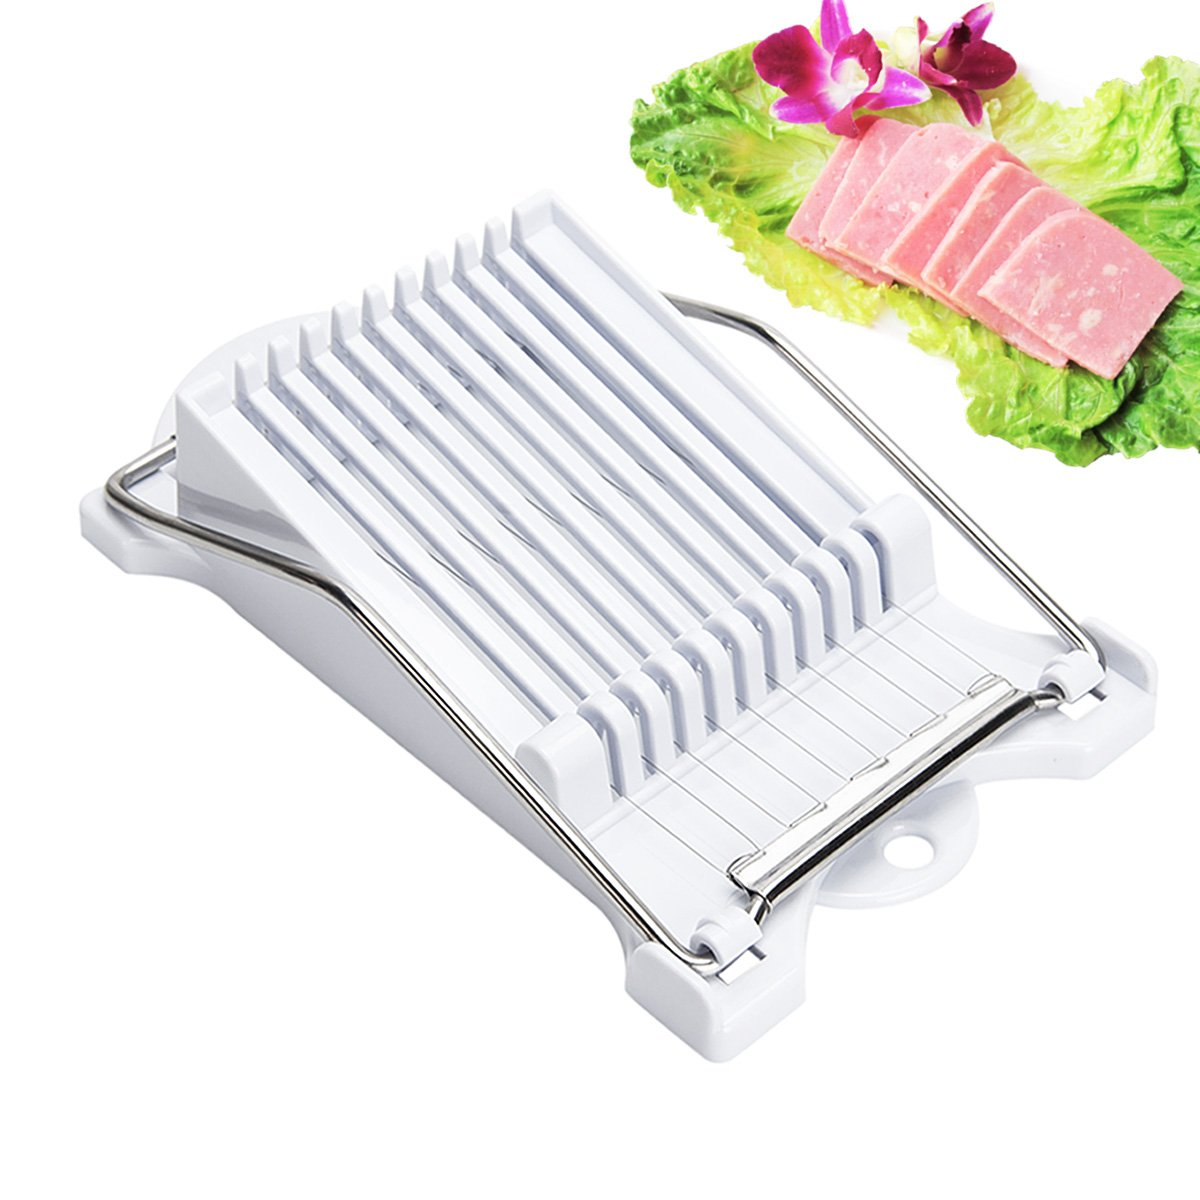 Jeobest Luncheon Meat Slicer - Stainless Steel Wire Egg Slicer - Multipurpose Stainless Steel Meat Egg Slicer Cheese Slicer Boiled Fruit Slicer Sushi Cutter Canned Meat Slicer with 10 Cutting Wire MZ